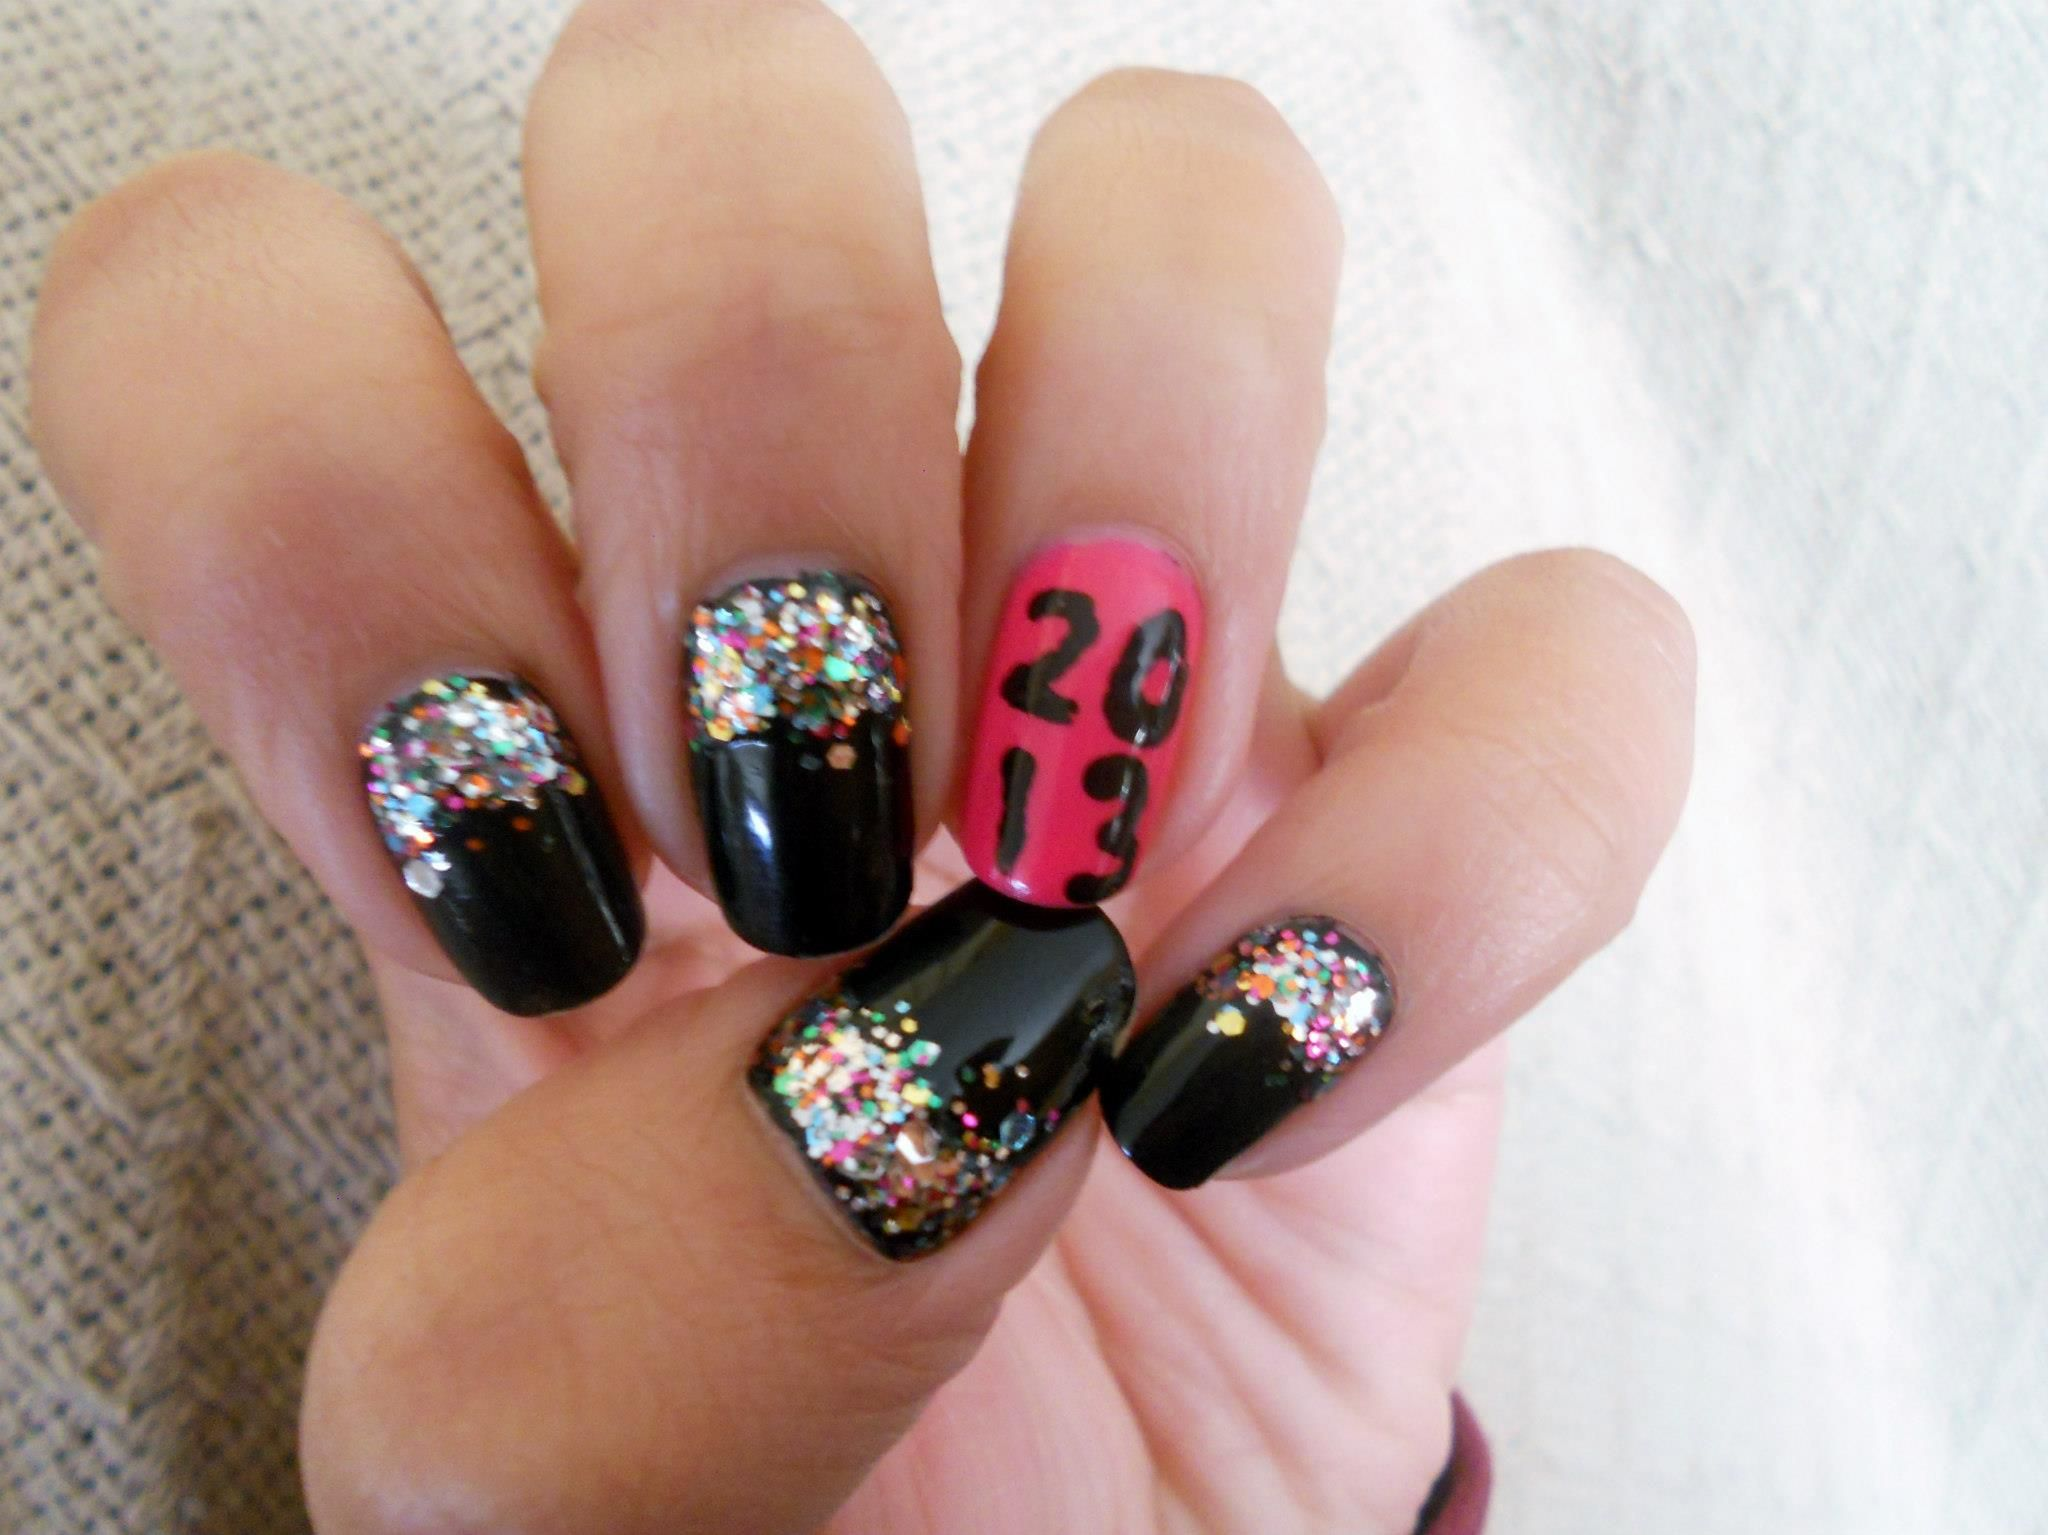 New Years Nails ) Nail polish art, New year's nails